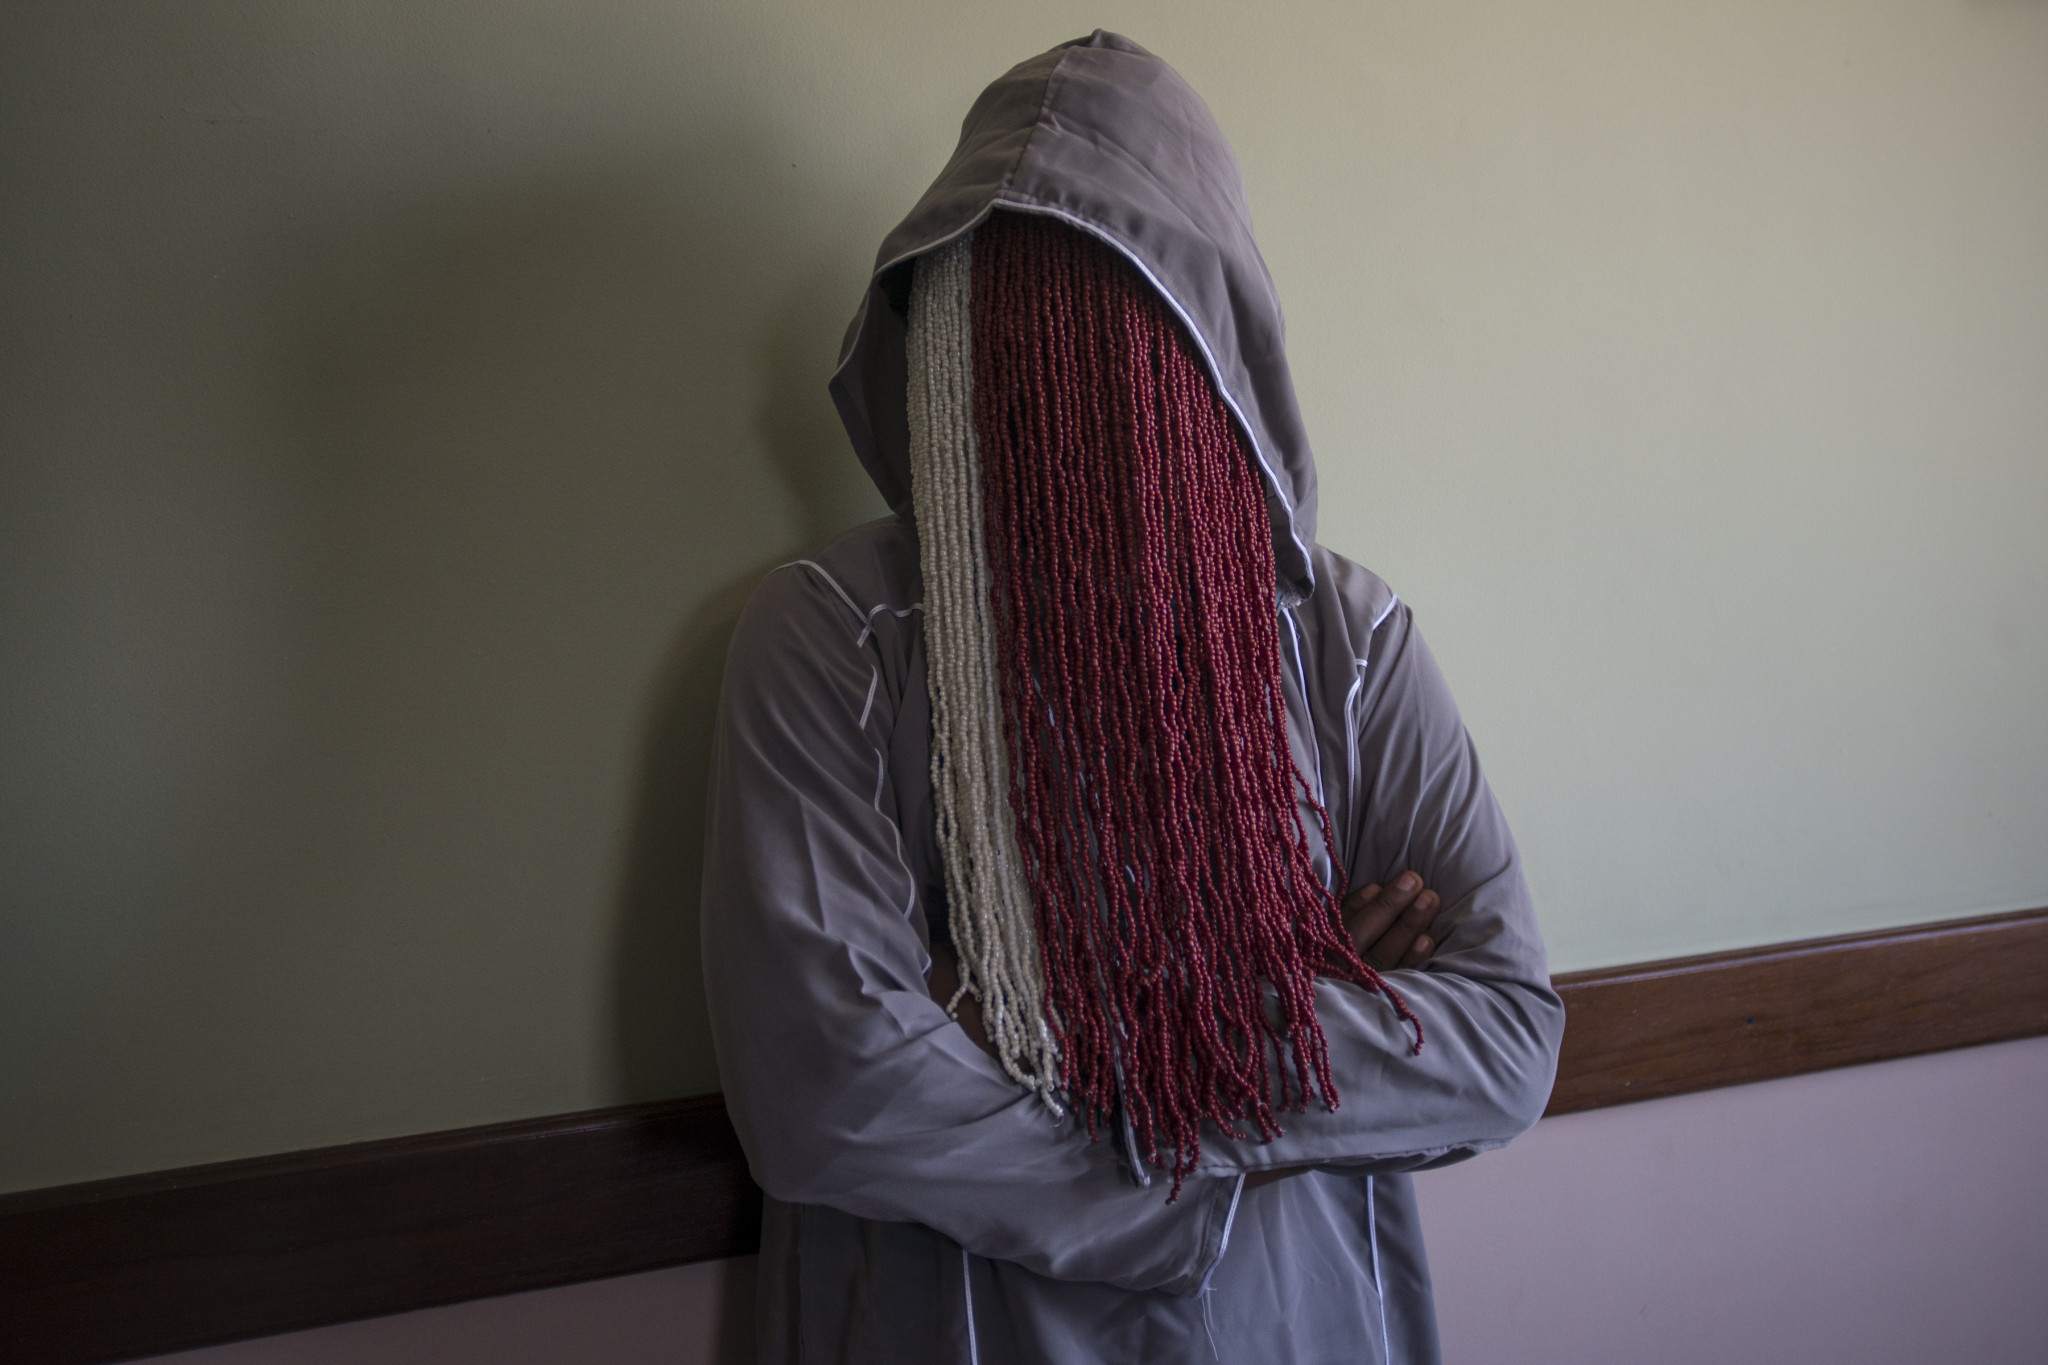 Anas Aremeyaw Anas, who led the investigative team of which Ahmed Hussein-Suale was a part, said the team